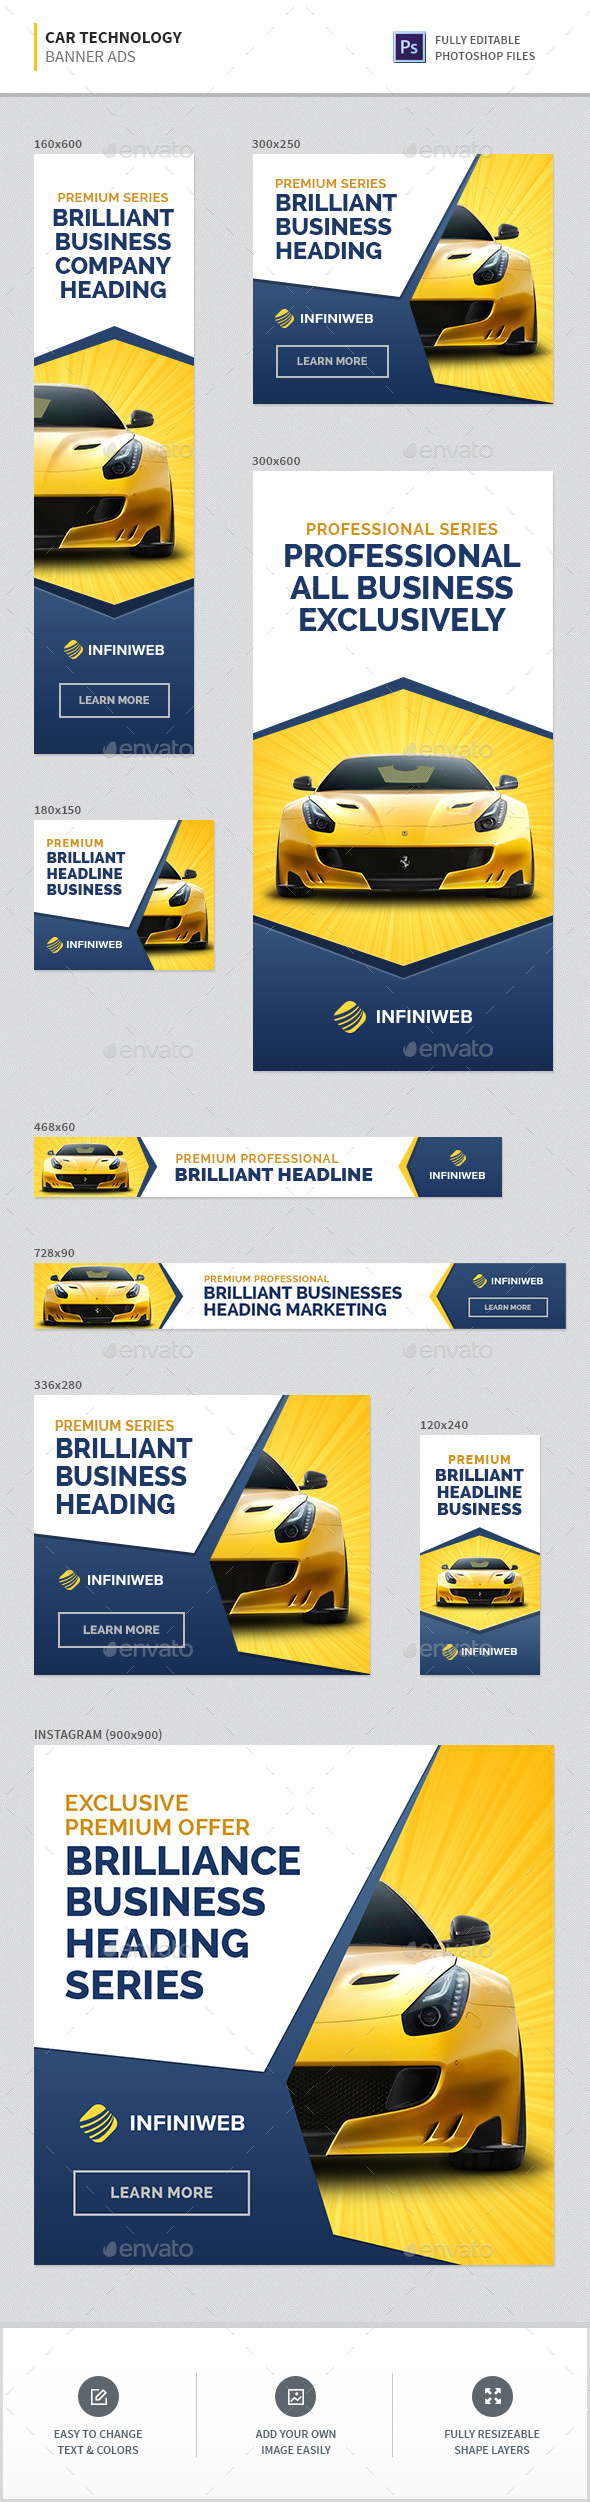 Car Technology Banners - Banners & Ads Web Elements